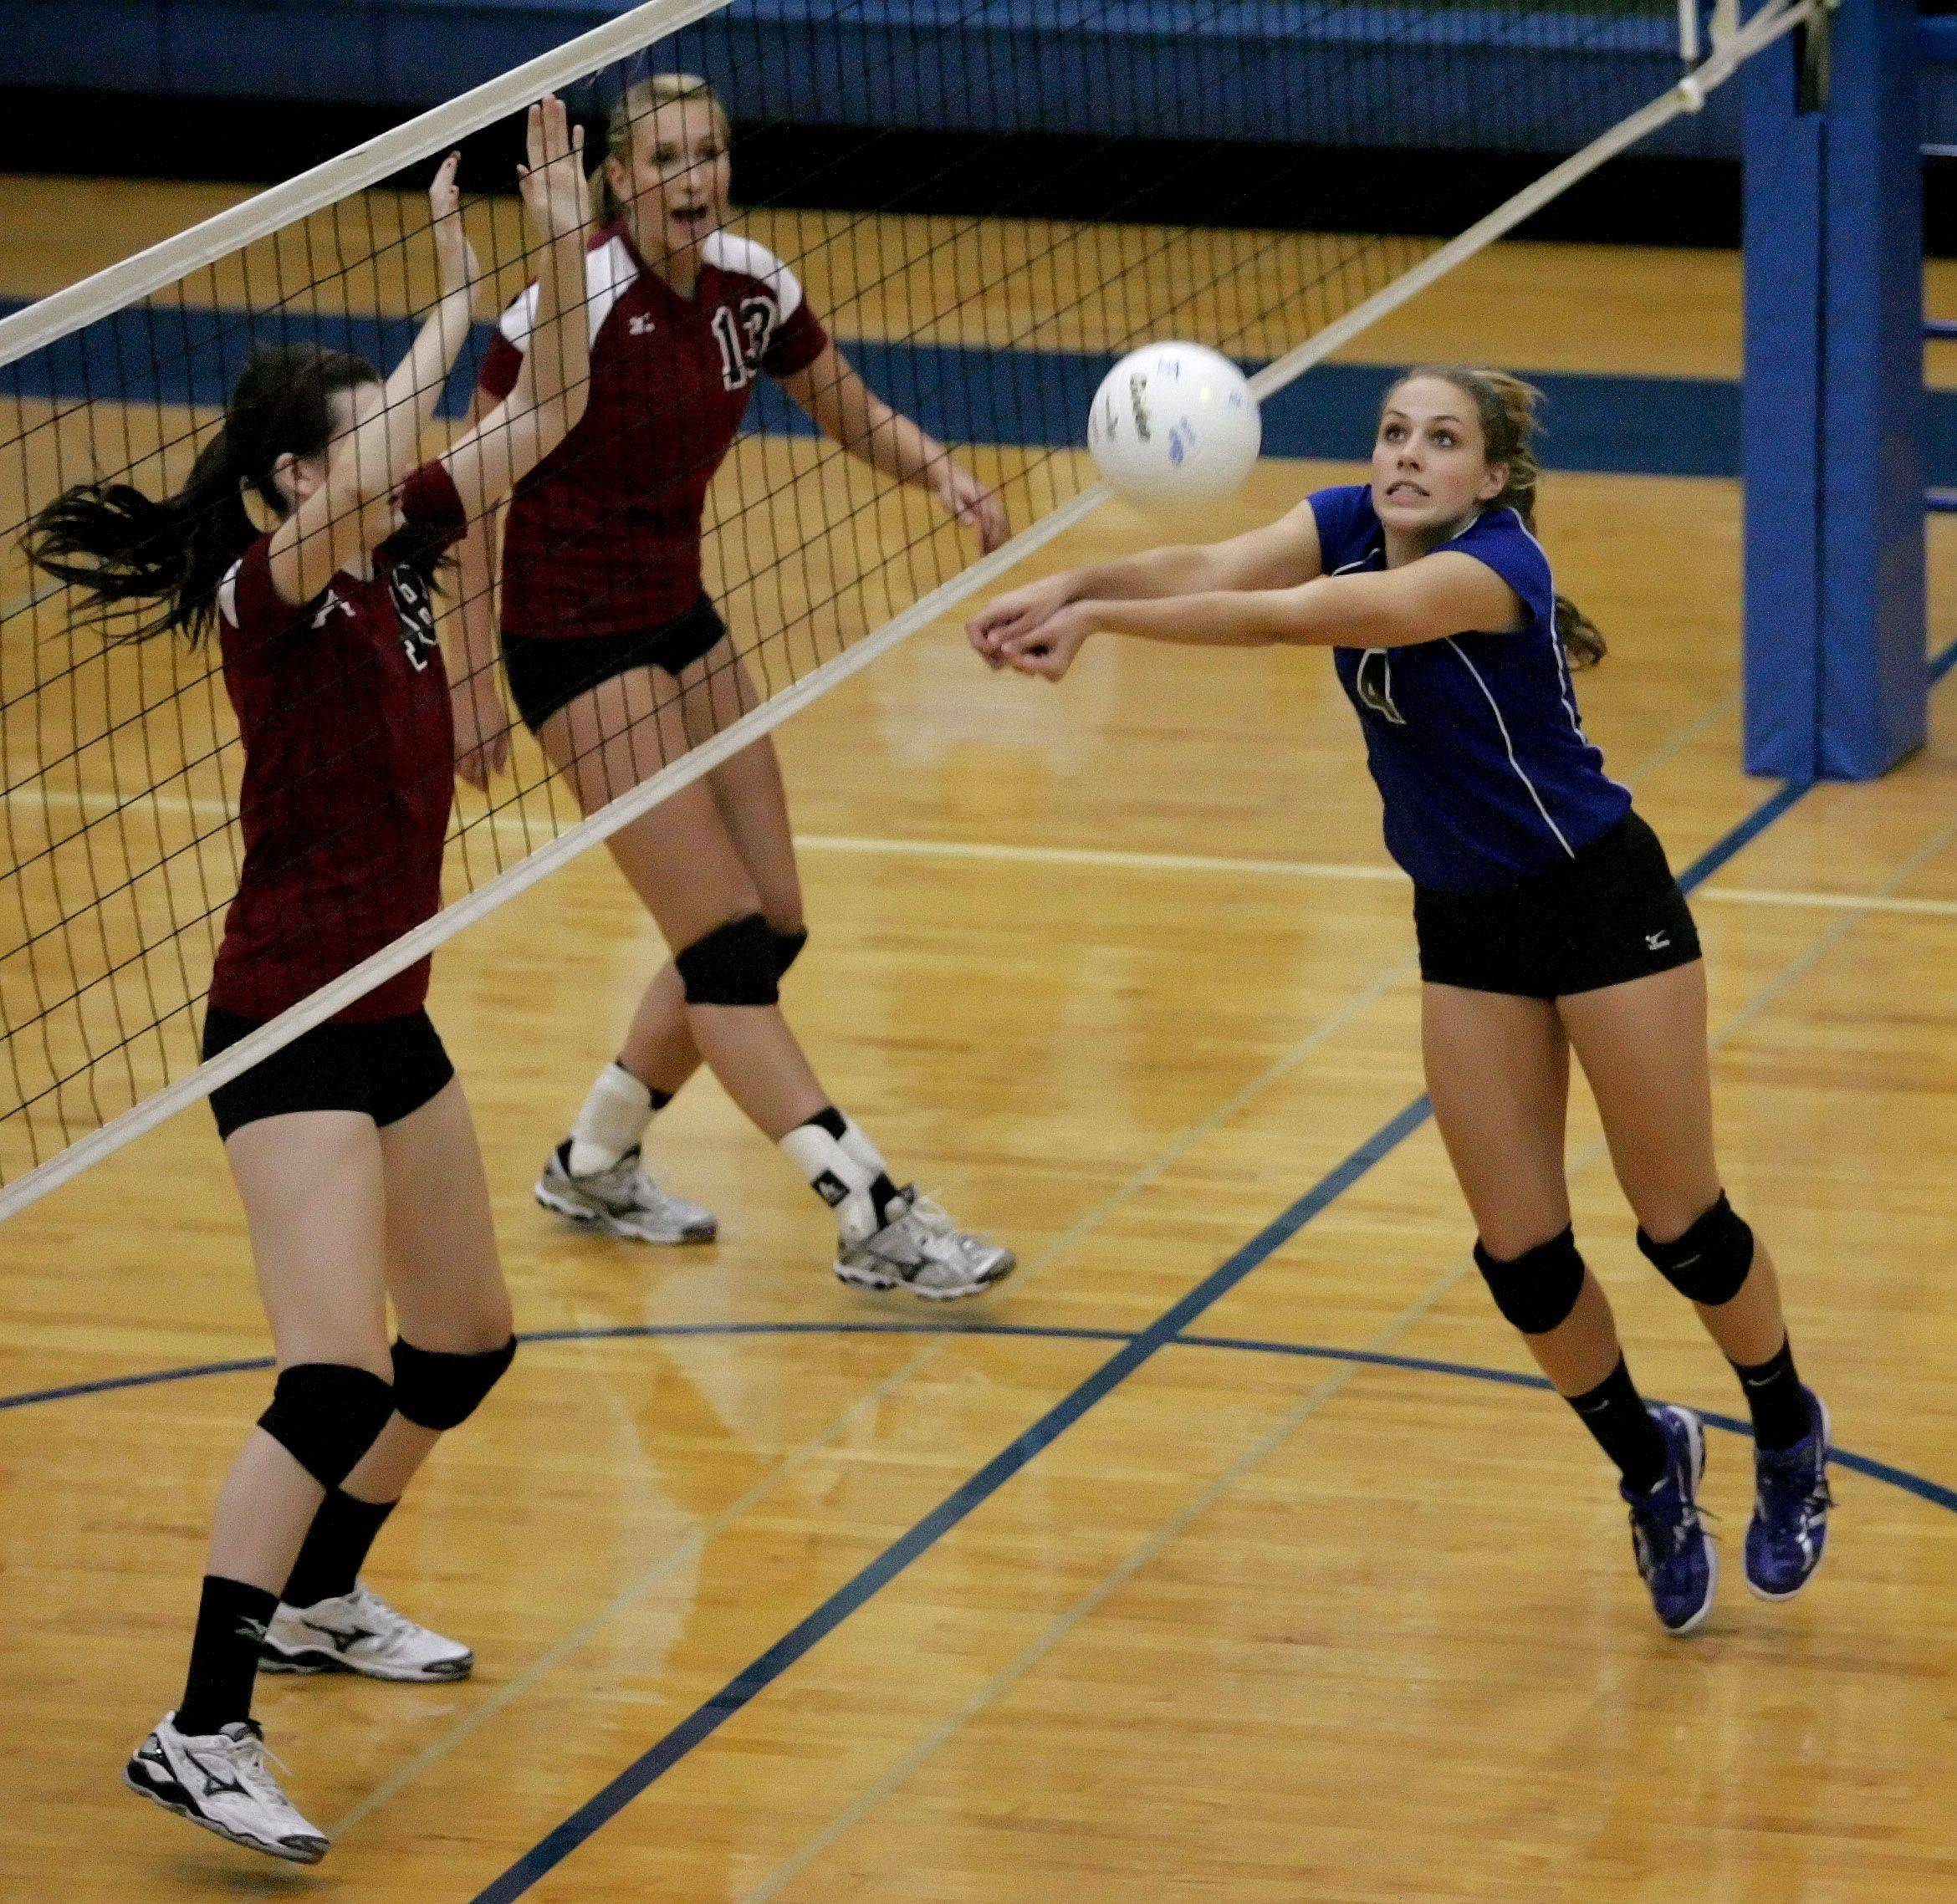 Kelly Reinke of St. Francis, right, gets to the ball during Monday's game against Wheaton Acadamy.